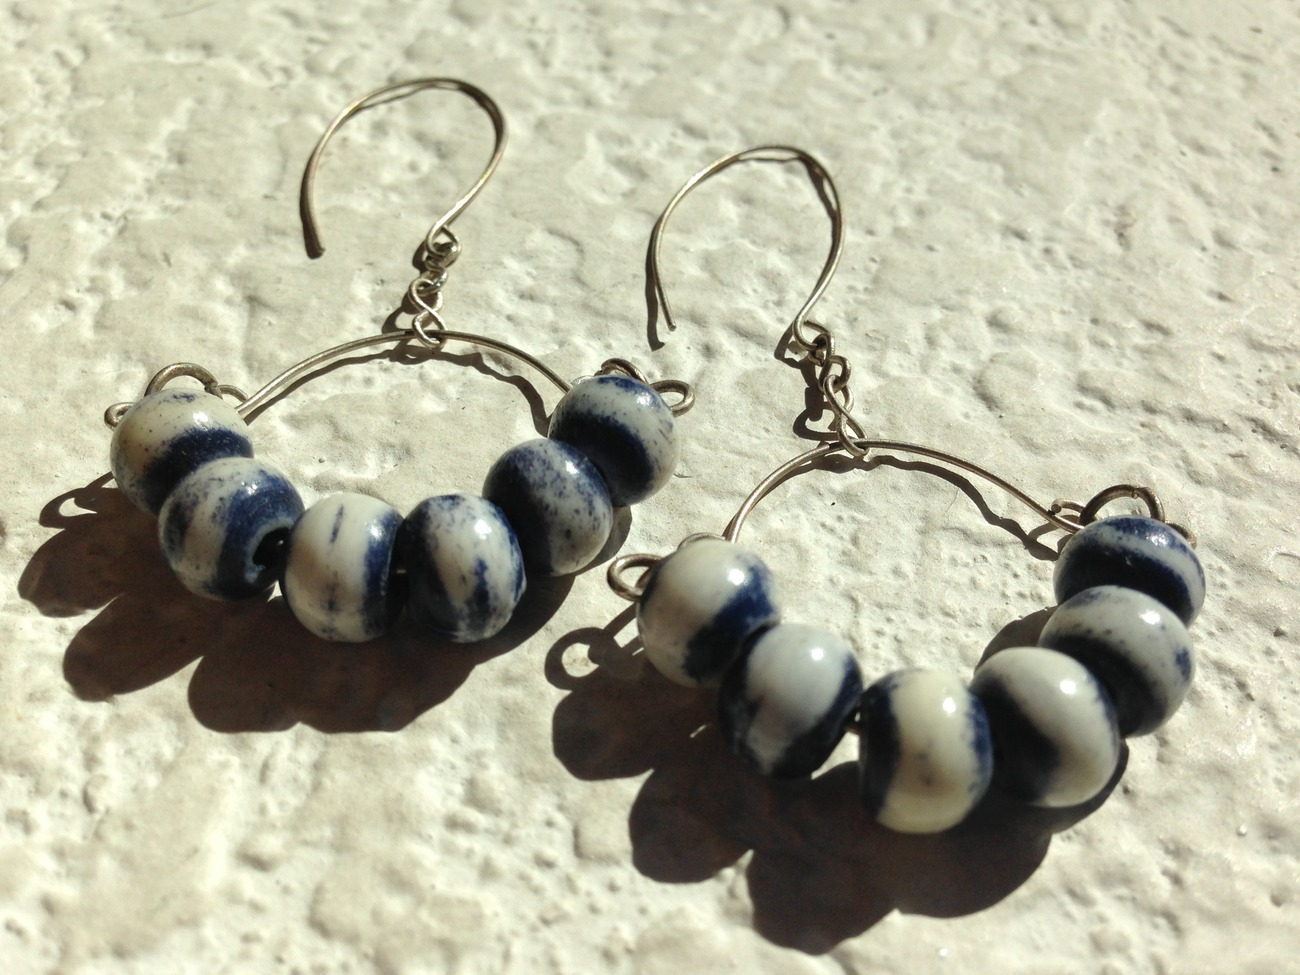 Blue and White Ceramic and Sterling Silver Earrings